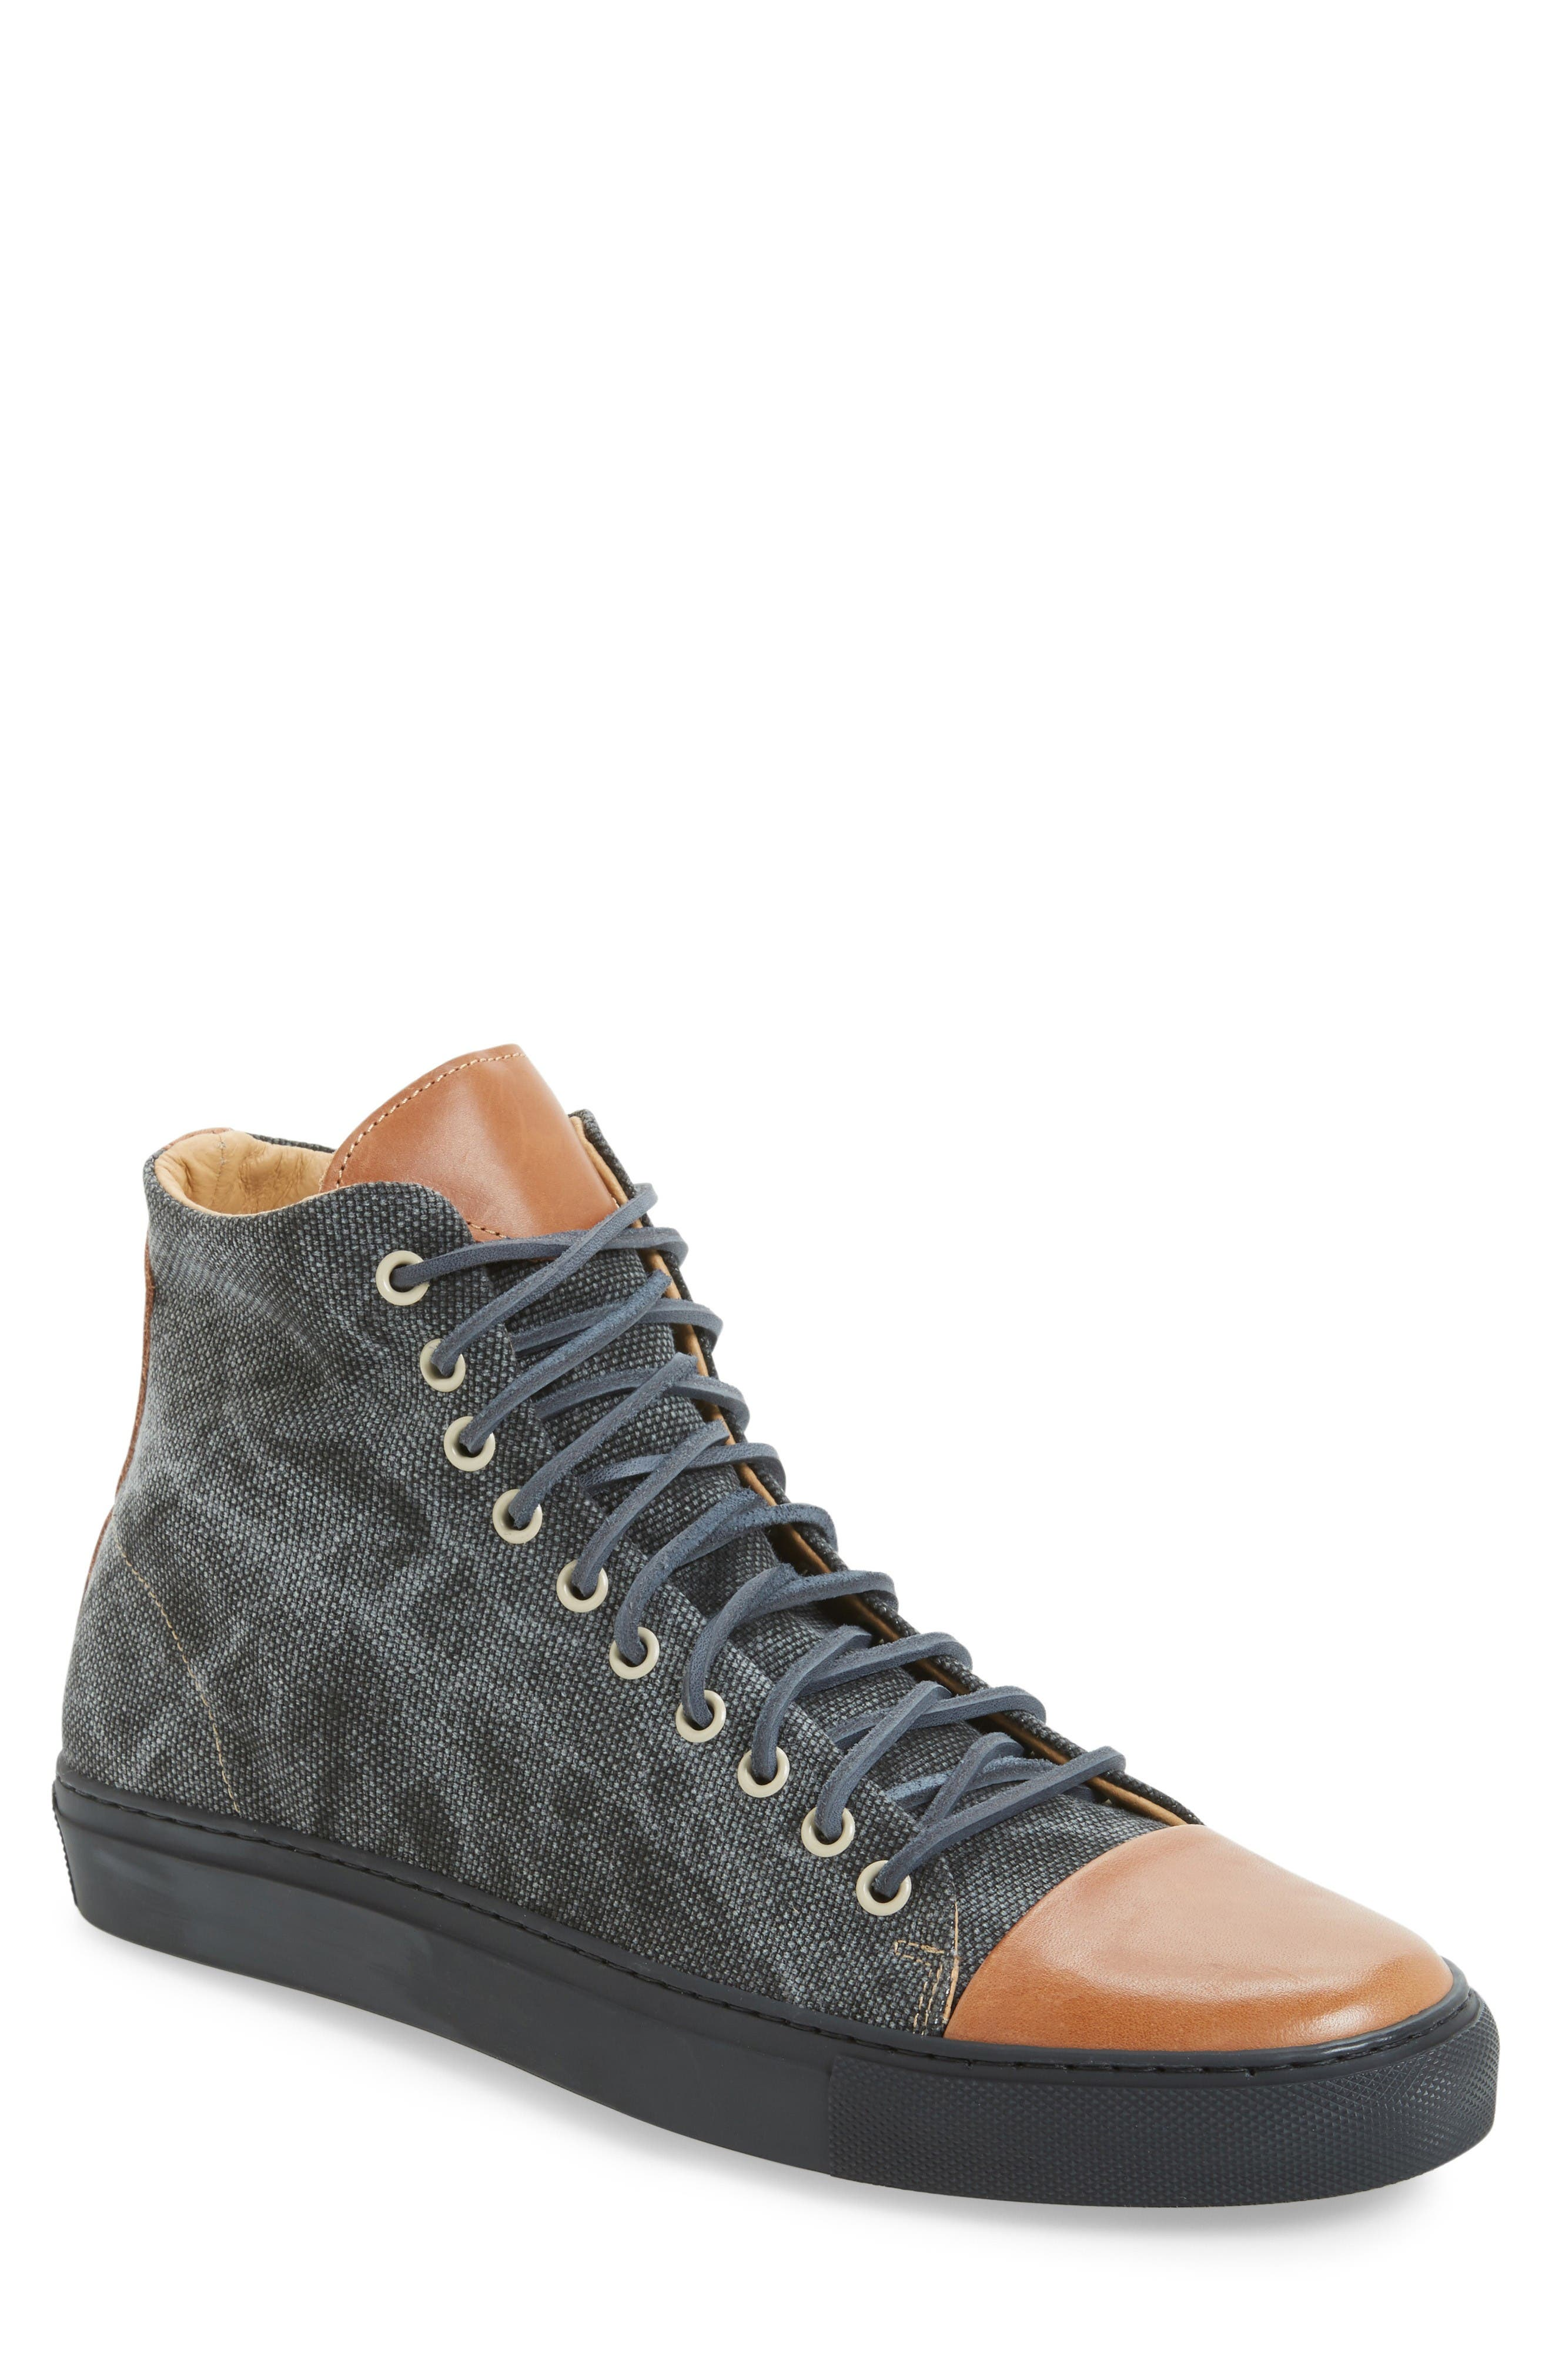 Main Image - Kenneth Cole New York Good Sport High Top Sneaker (Men)